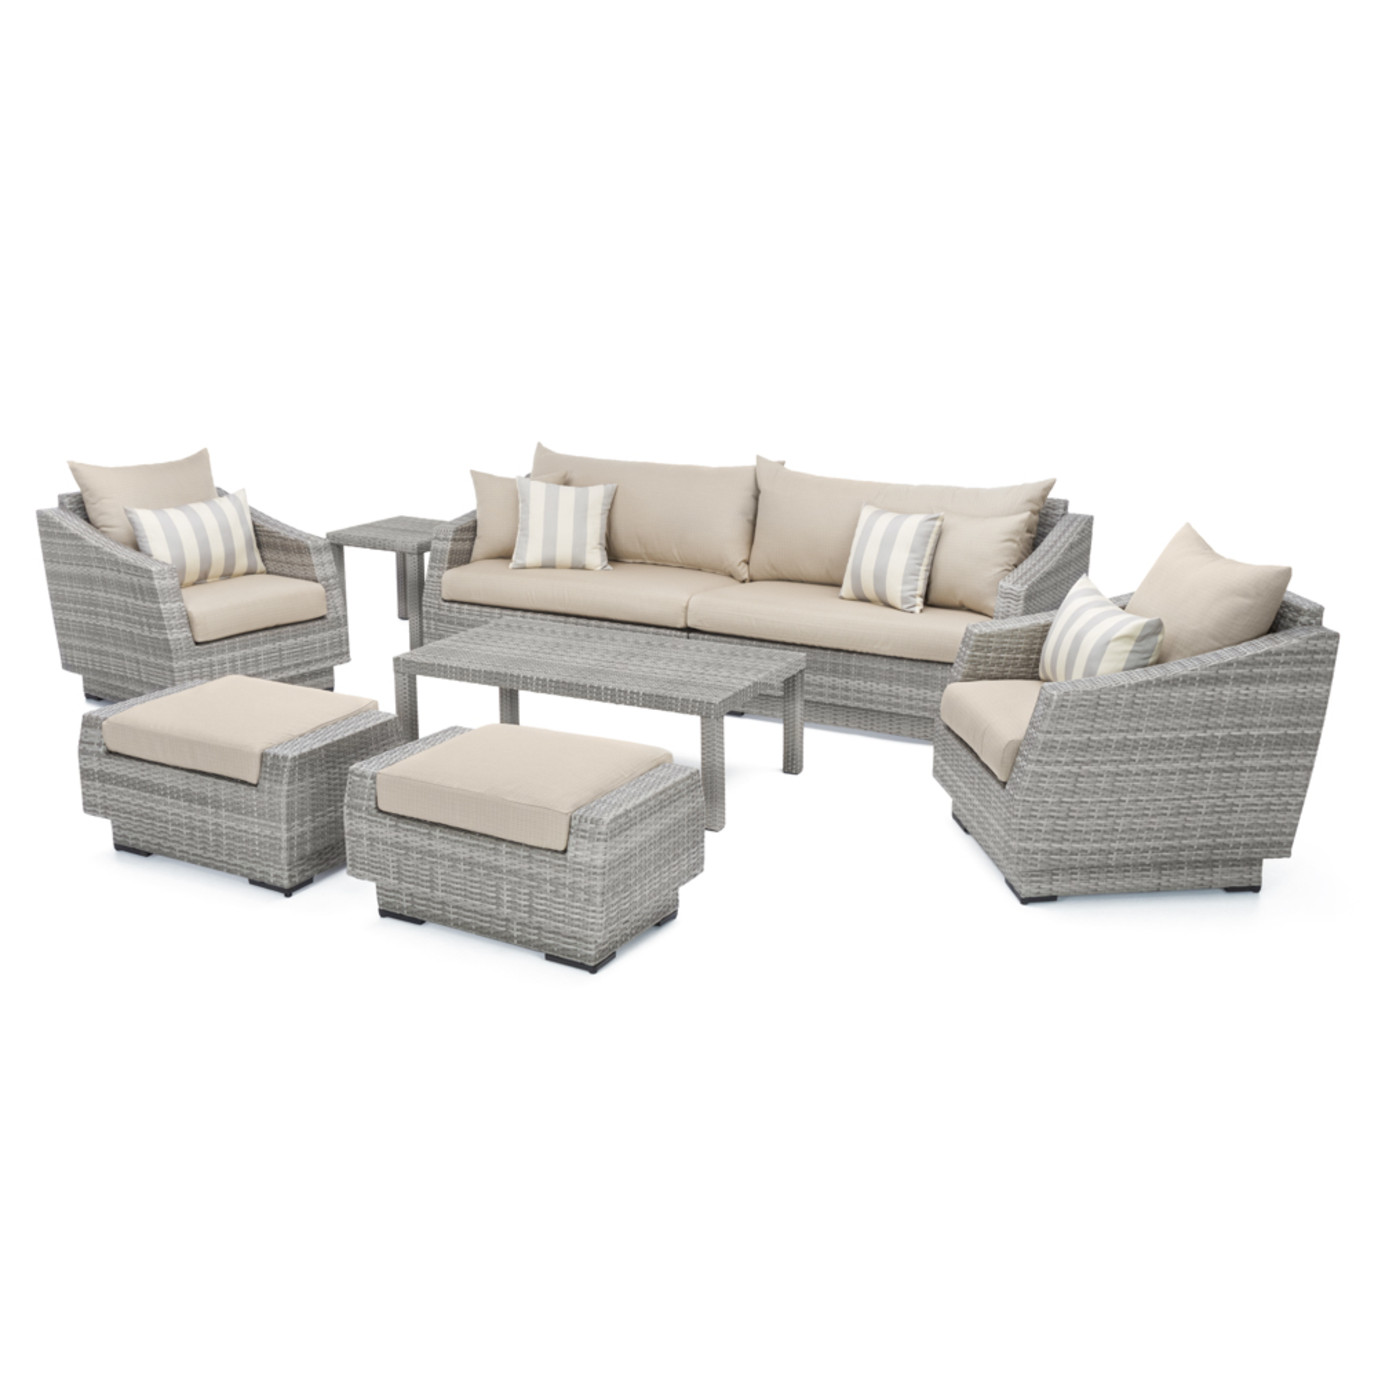 Cannes™ 8pc Sofa Set with Furniture Covers - Slate Gray